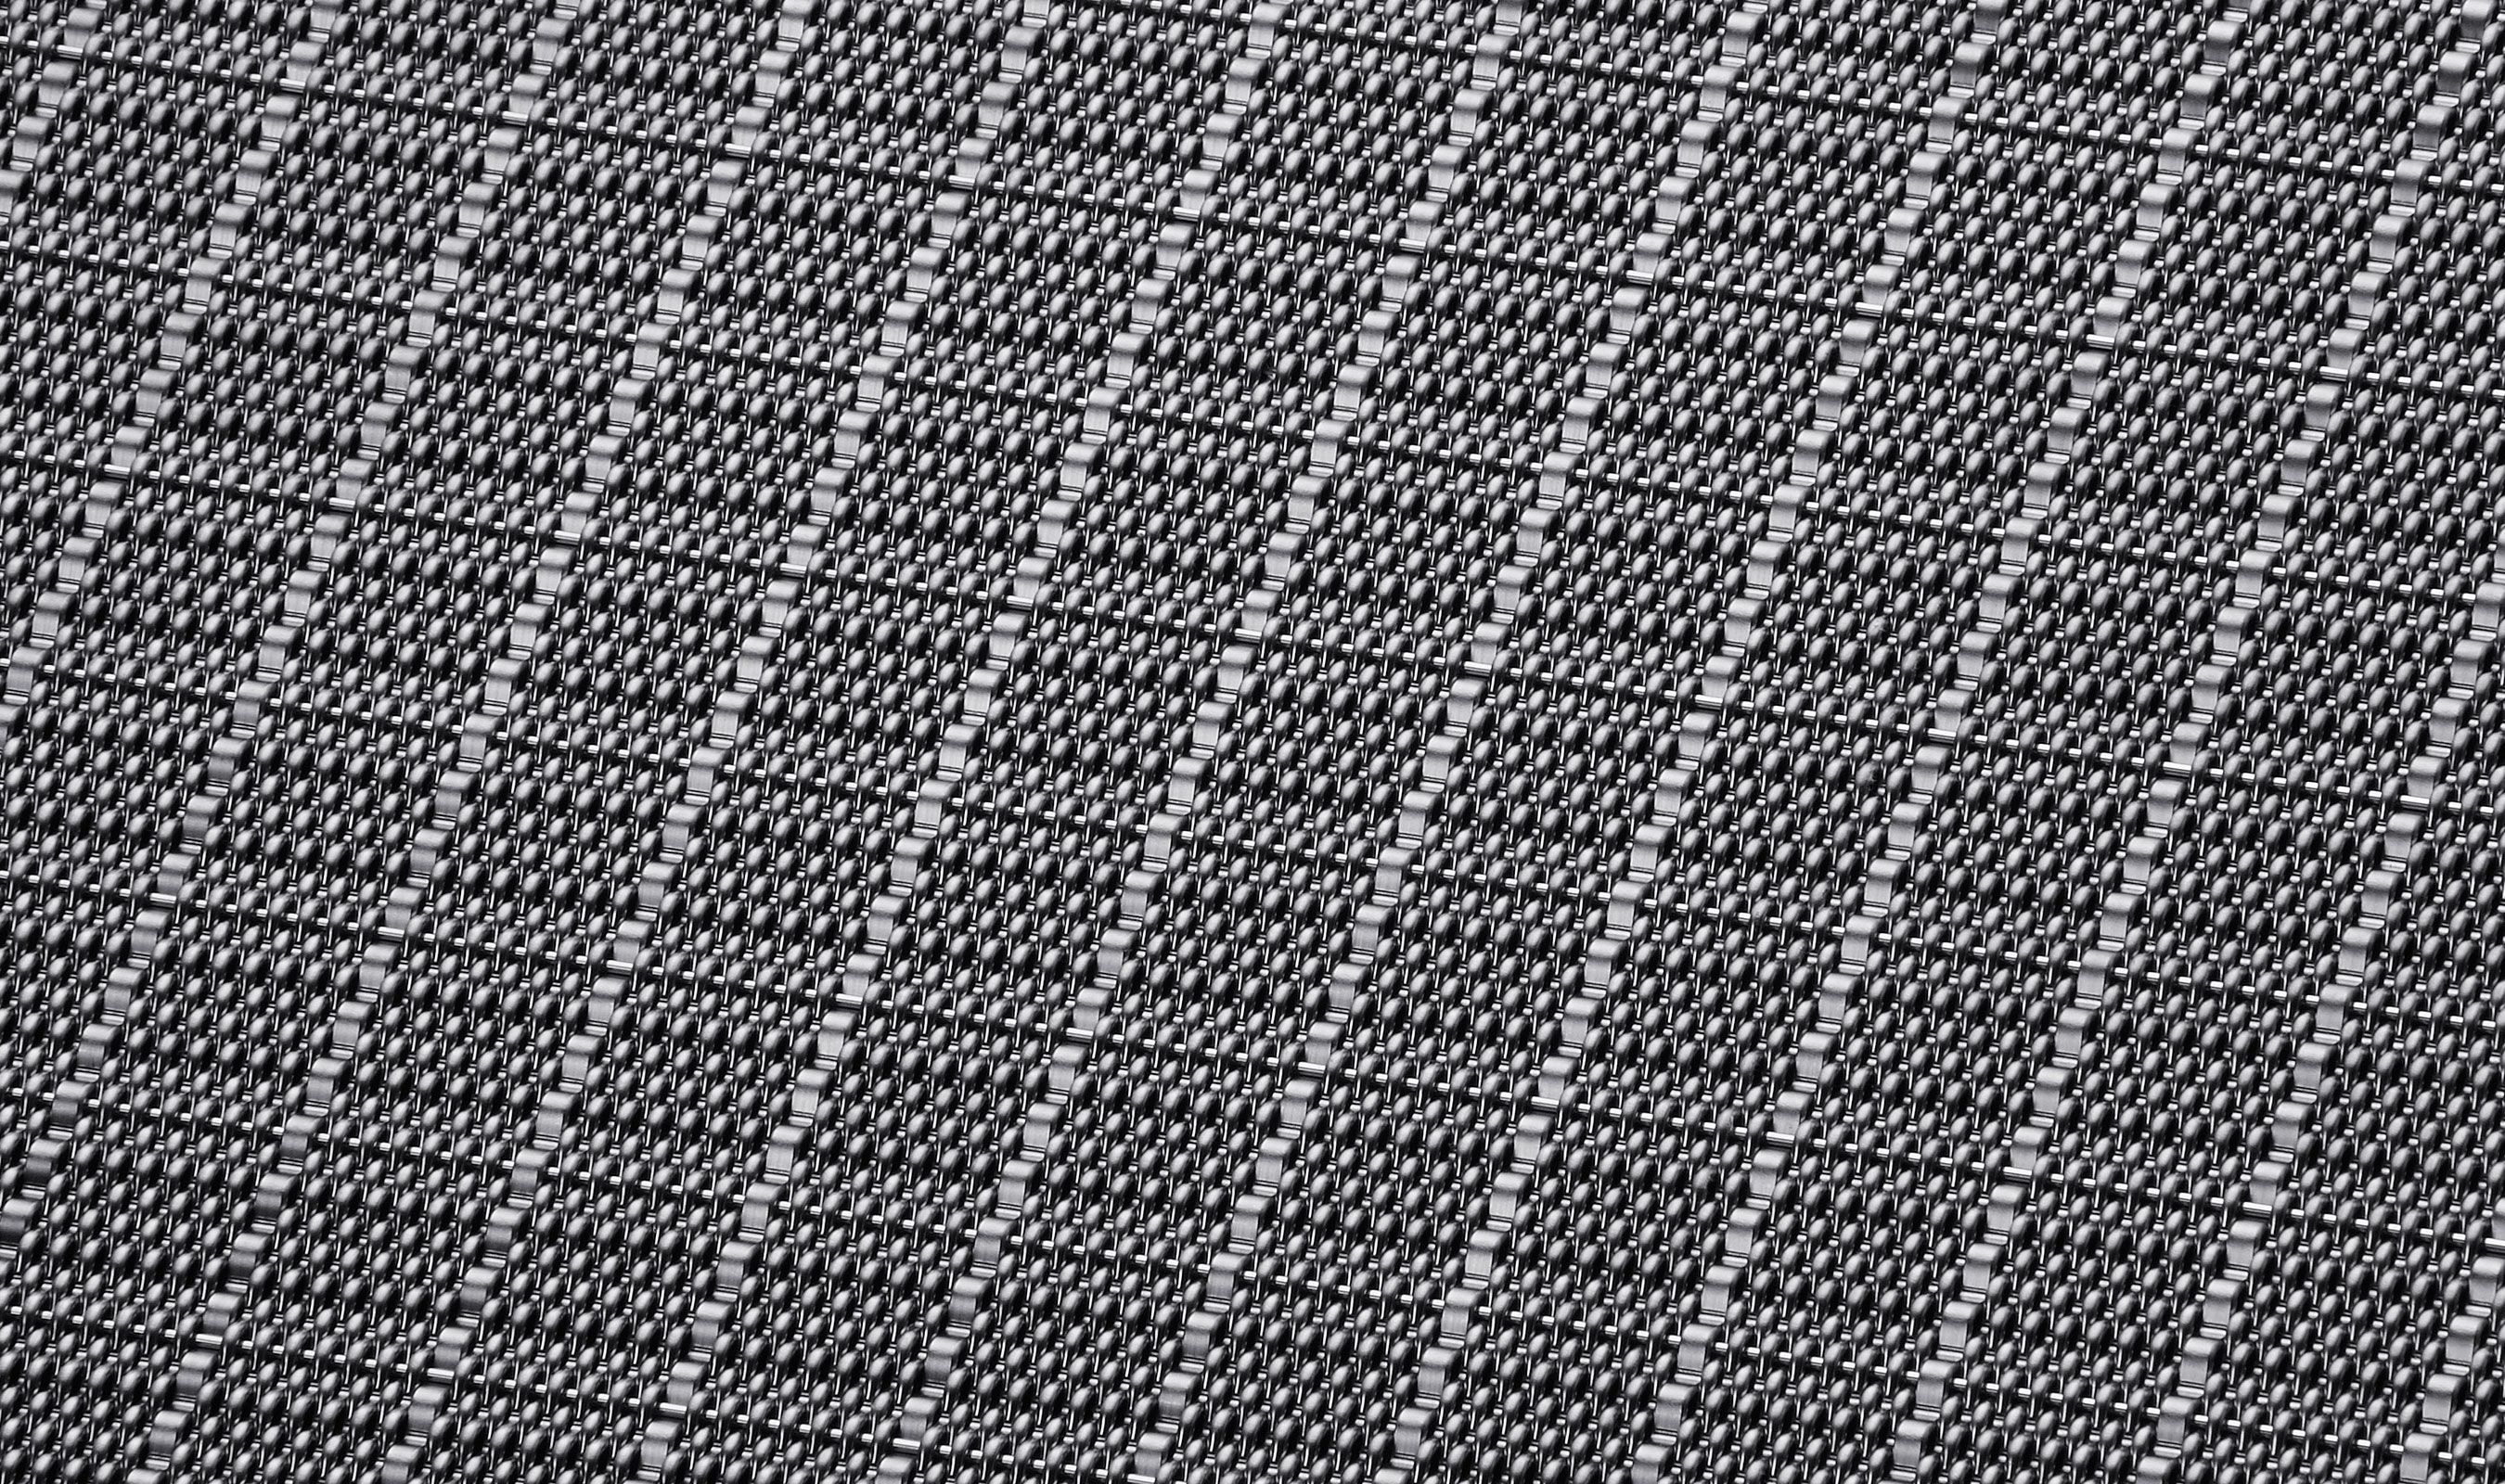 DI-4 in a Stainless Steel Woven Wire Mesh finish